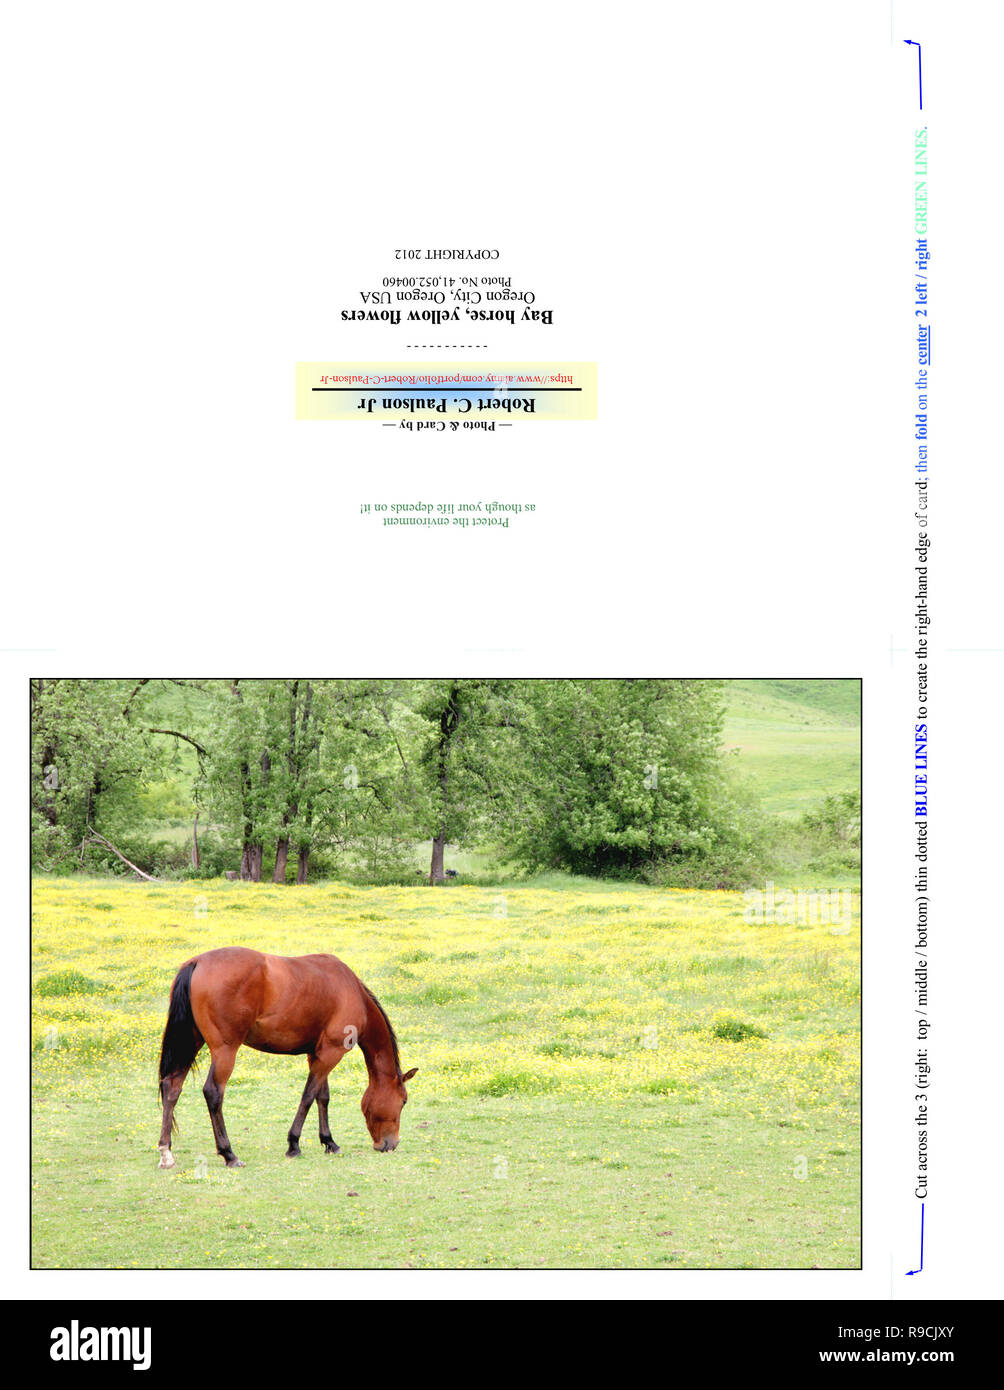 41,052.00460 Photography Note Card (print cut fold for 7x5 photo card), brown horse, yellow flowers green pasture, trees bkgr, slight hill & valley - Stock Image